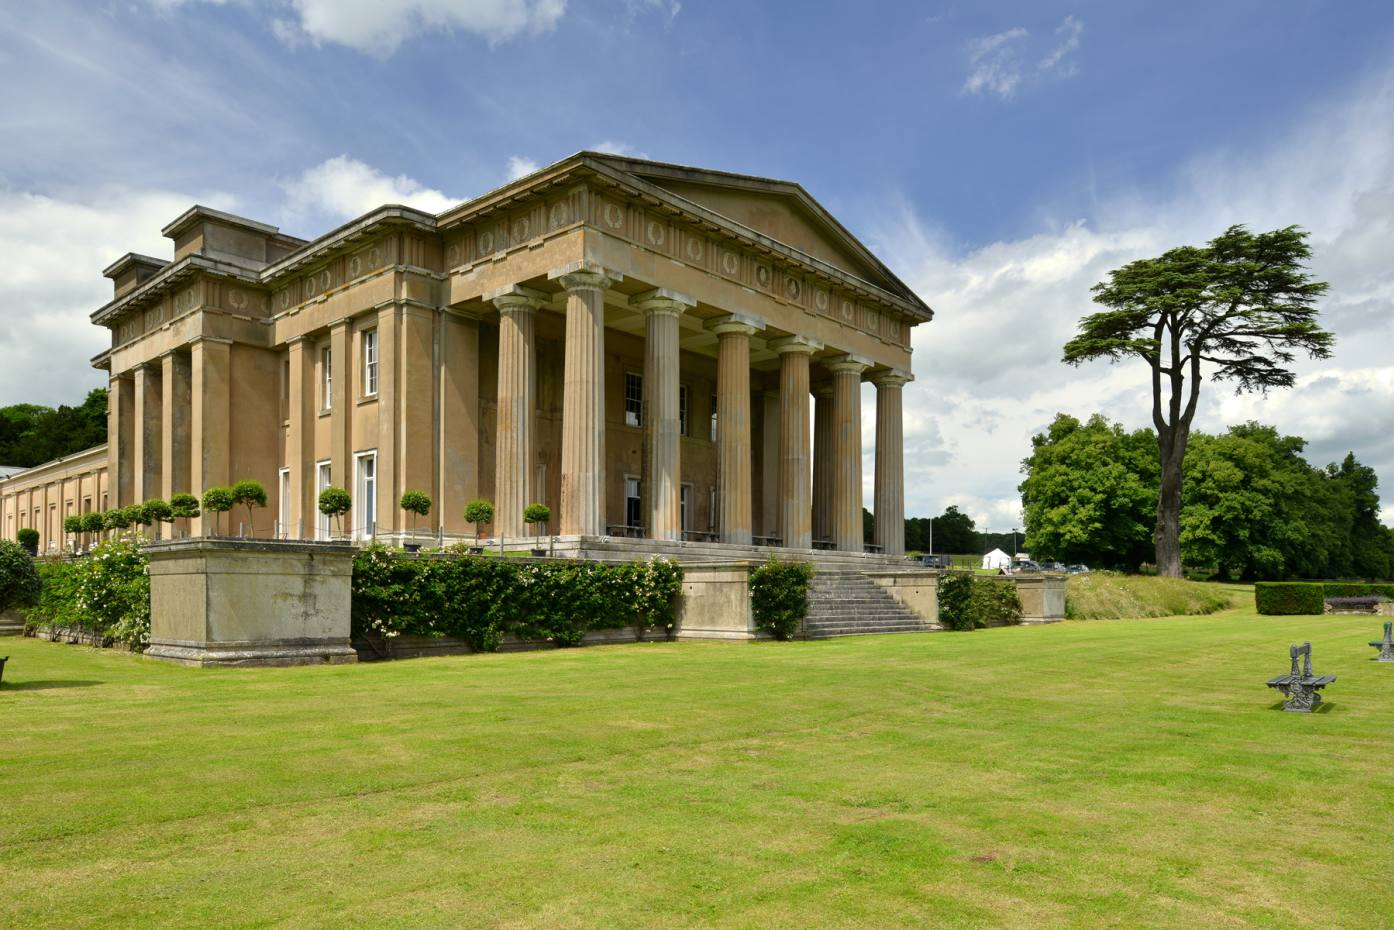 The Grange resides on the banks of the Candover Brook in the bucolic surroundings of Hampshire